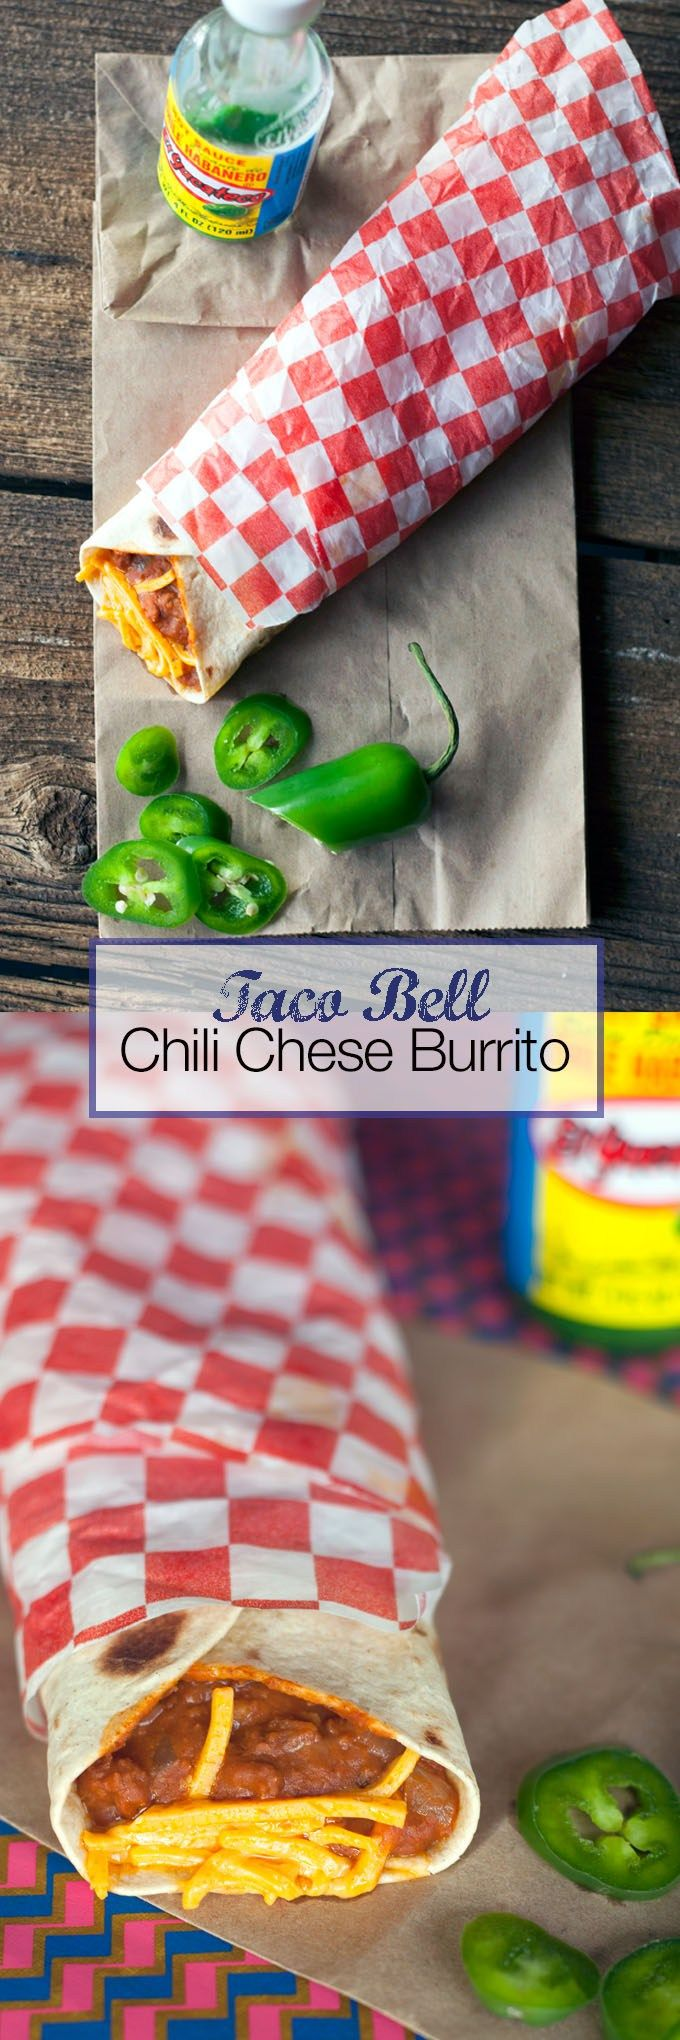 A copycat recipe for the Taco Bell chili cheese burrito. This burrito combines chili flavored vegetarian ground beef, refried beans and vegan cheddar cheese in a tortilla. This Taco Bell recipe is super easy and so delicious.  Chili cheese burrito recipe, VEGAN